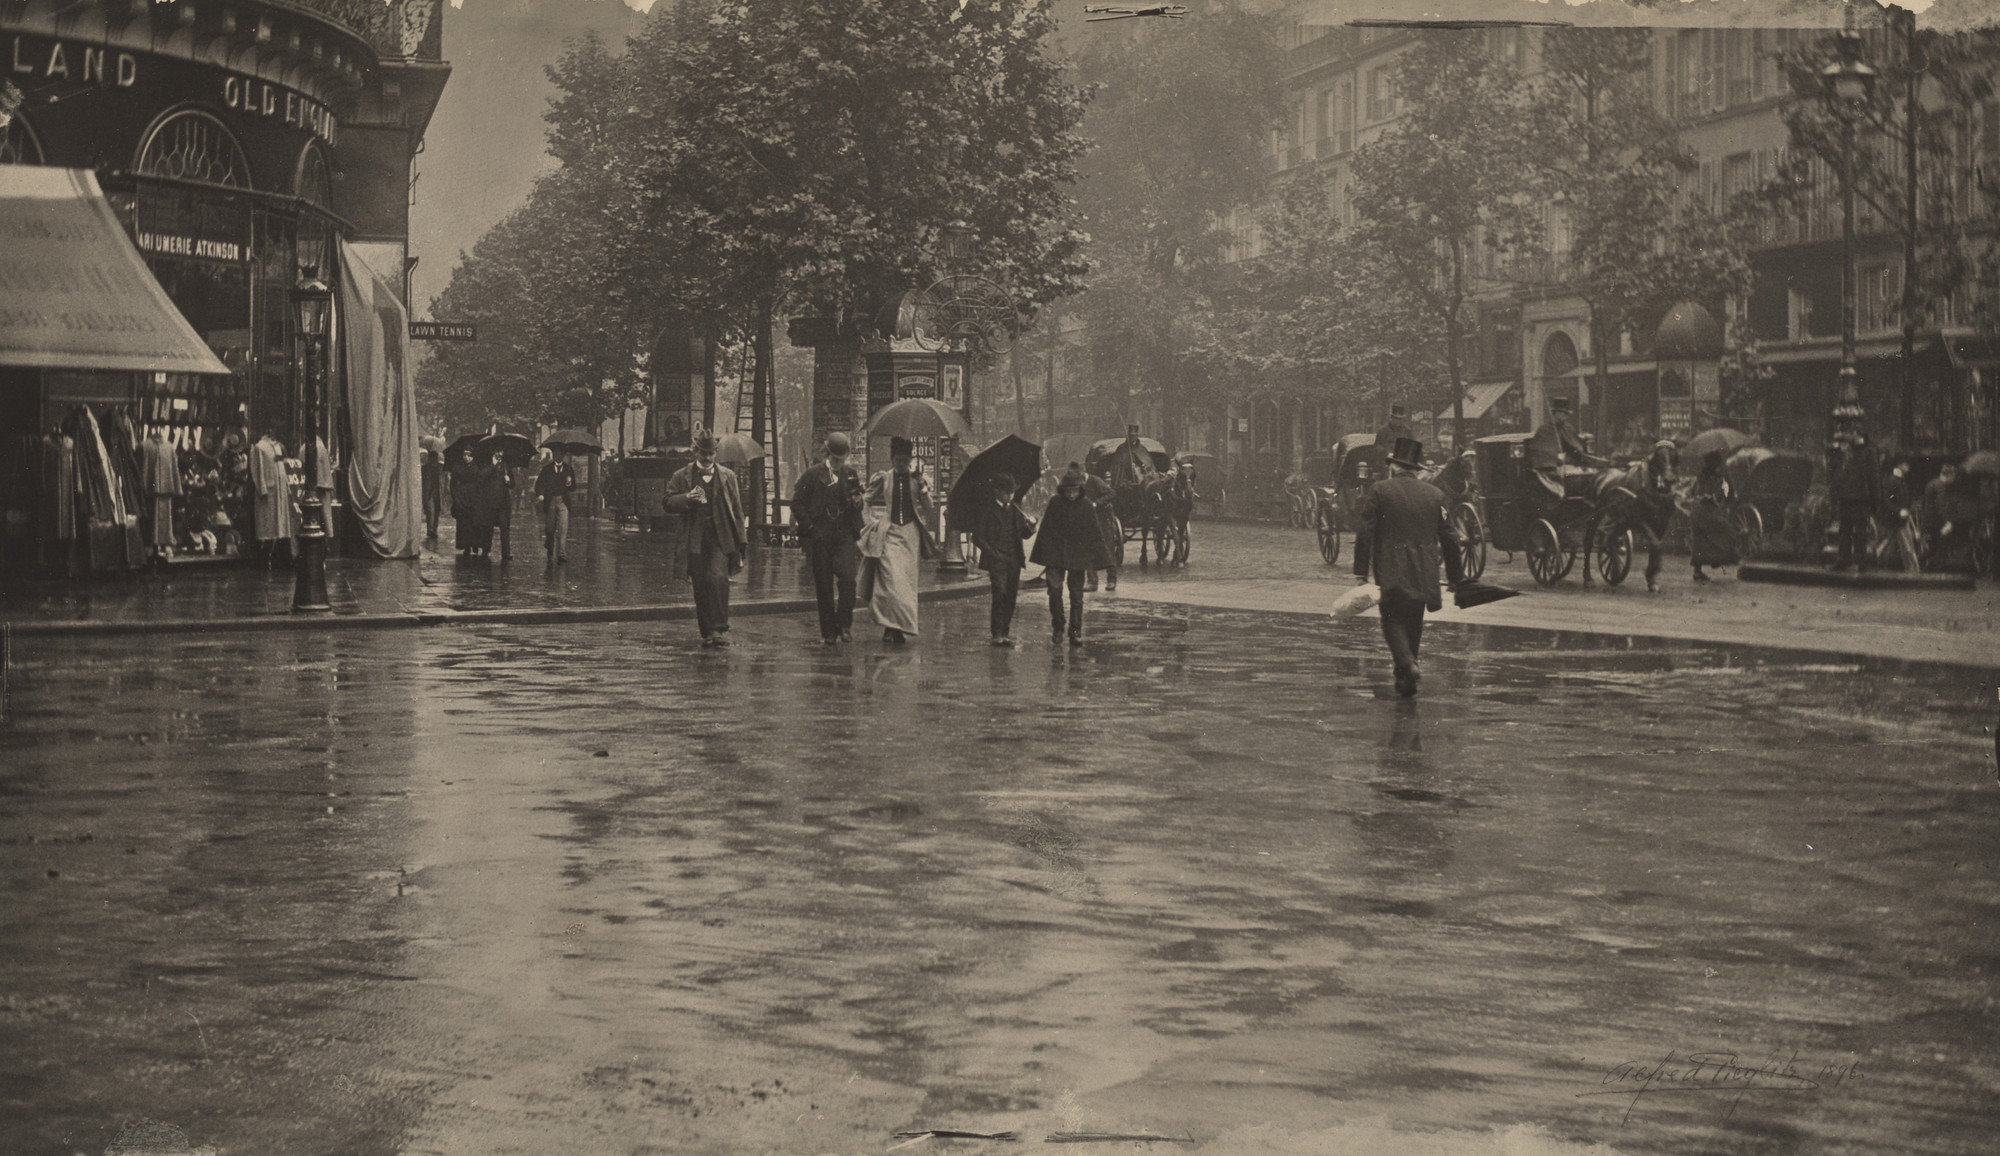 Alfred Stieglitz. A Wet Day on the Boulevard, Paris. 1894